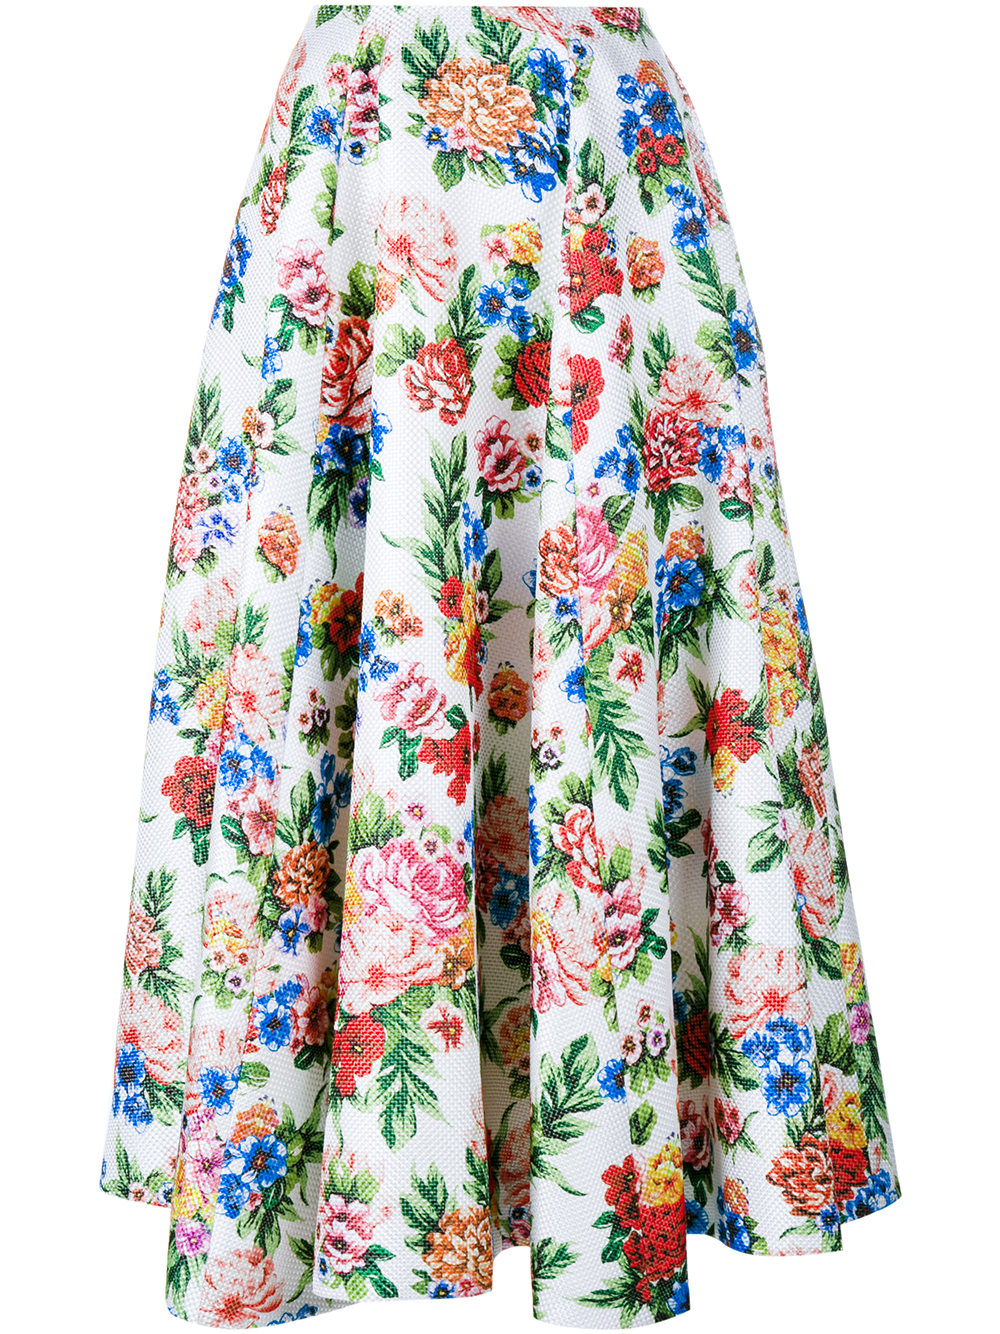 Emilia wickstead Floral A-line Skirt in Pink | Lyst